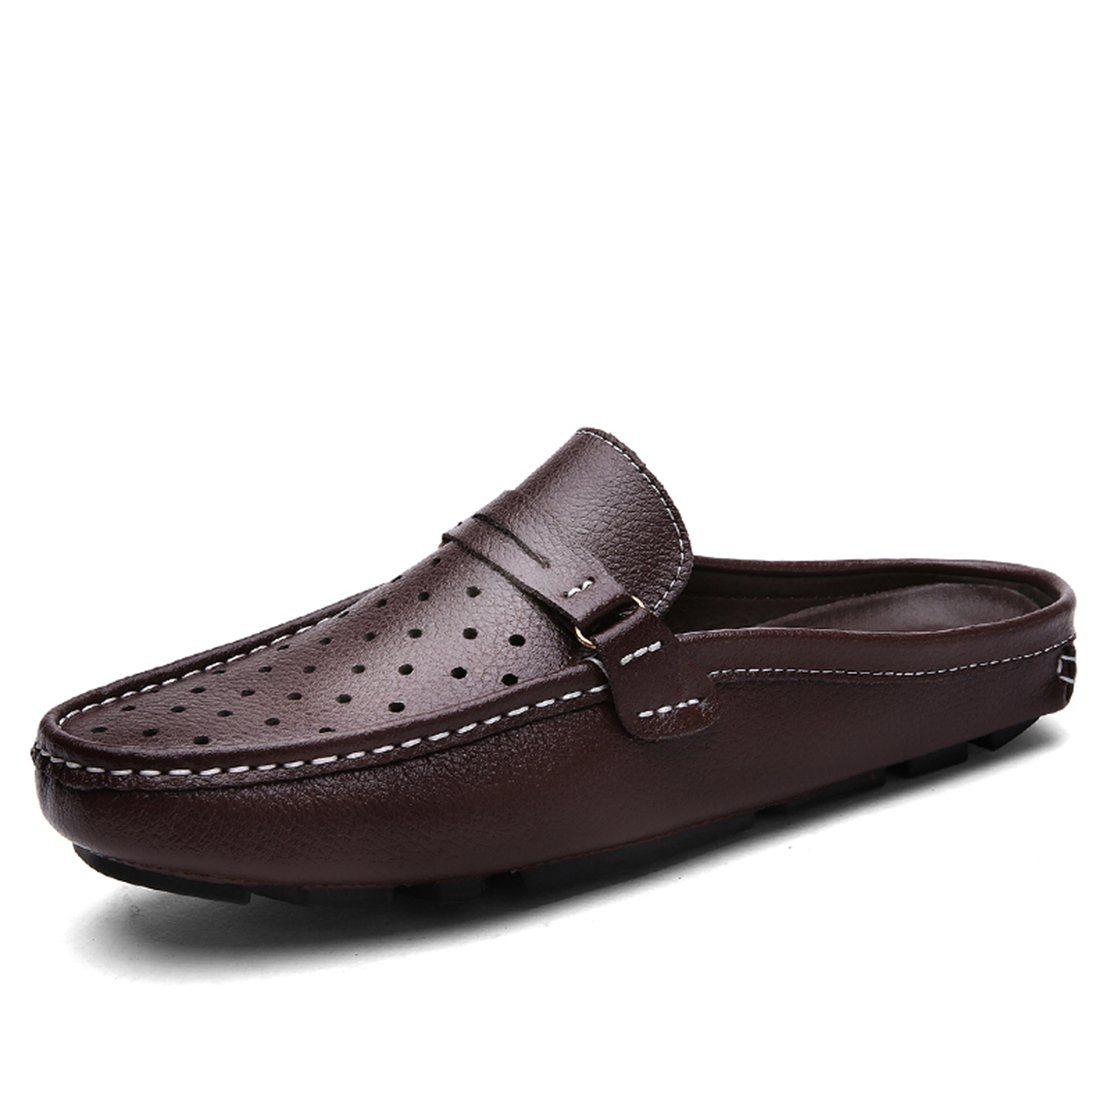 Go Tour Men's Comfortable Soft Scuff Leather Slippers Slip-on Loafters Shoes Brown 44 by Go Tour (Image #1)